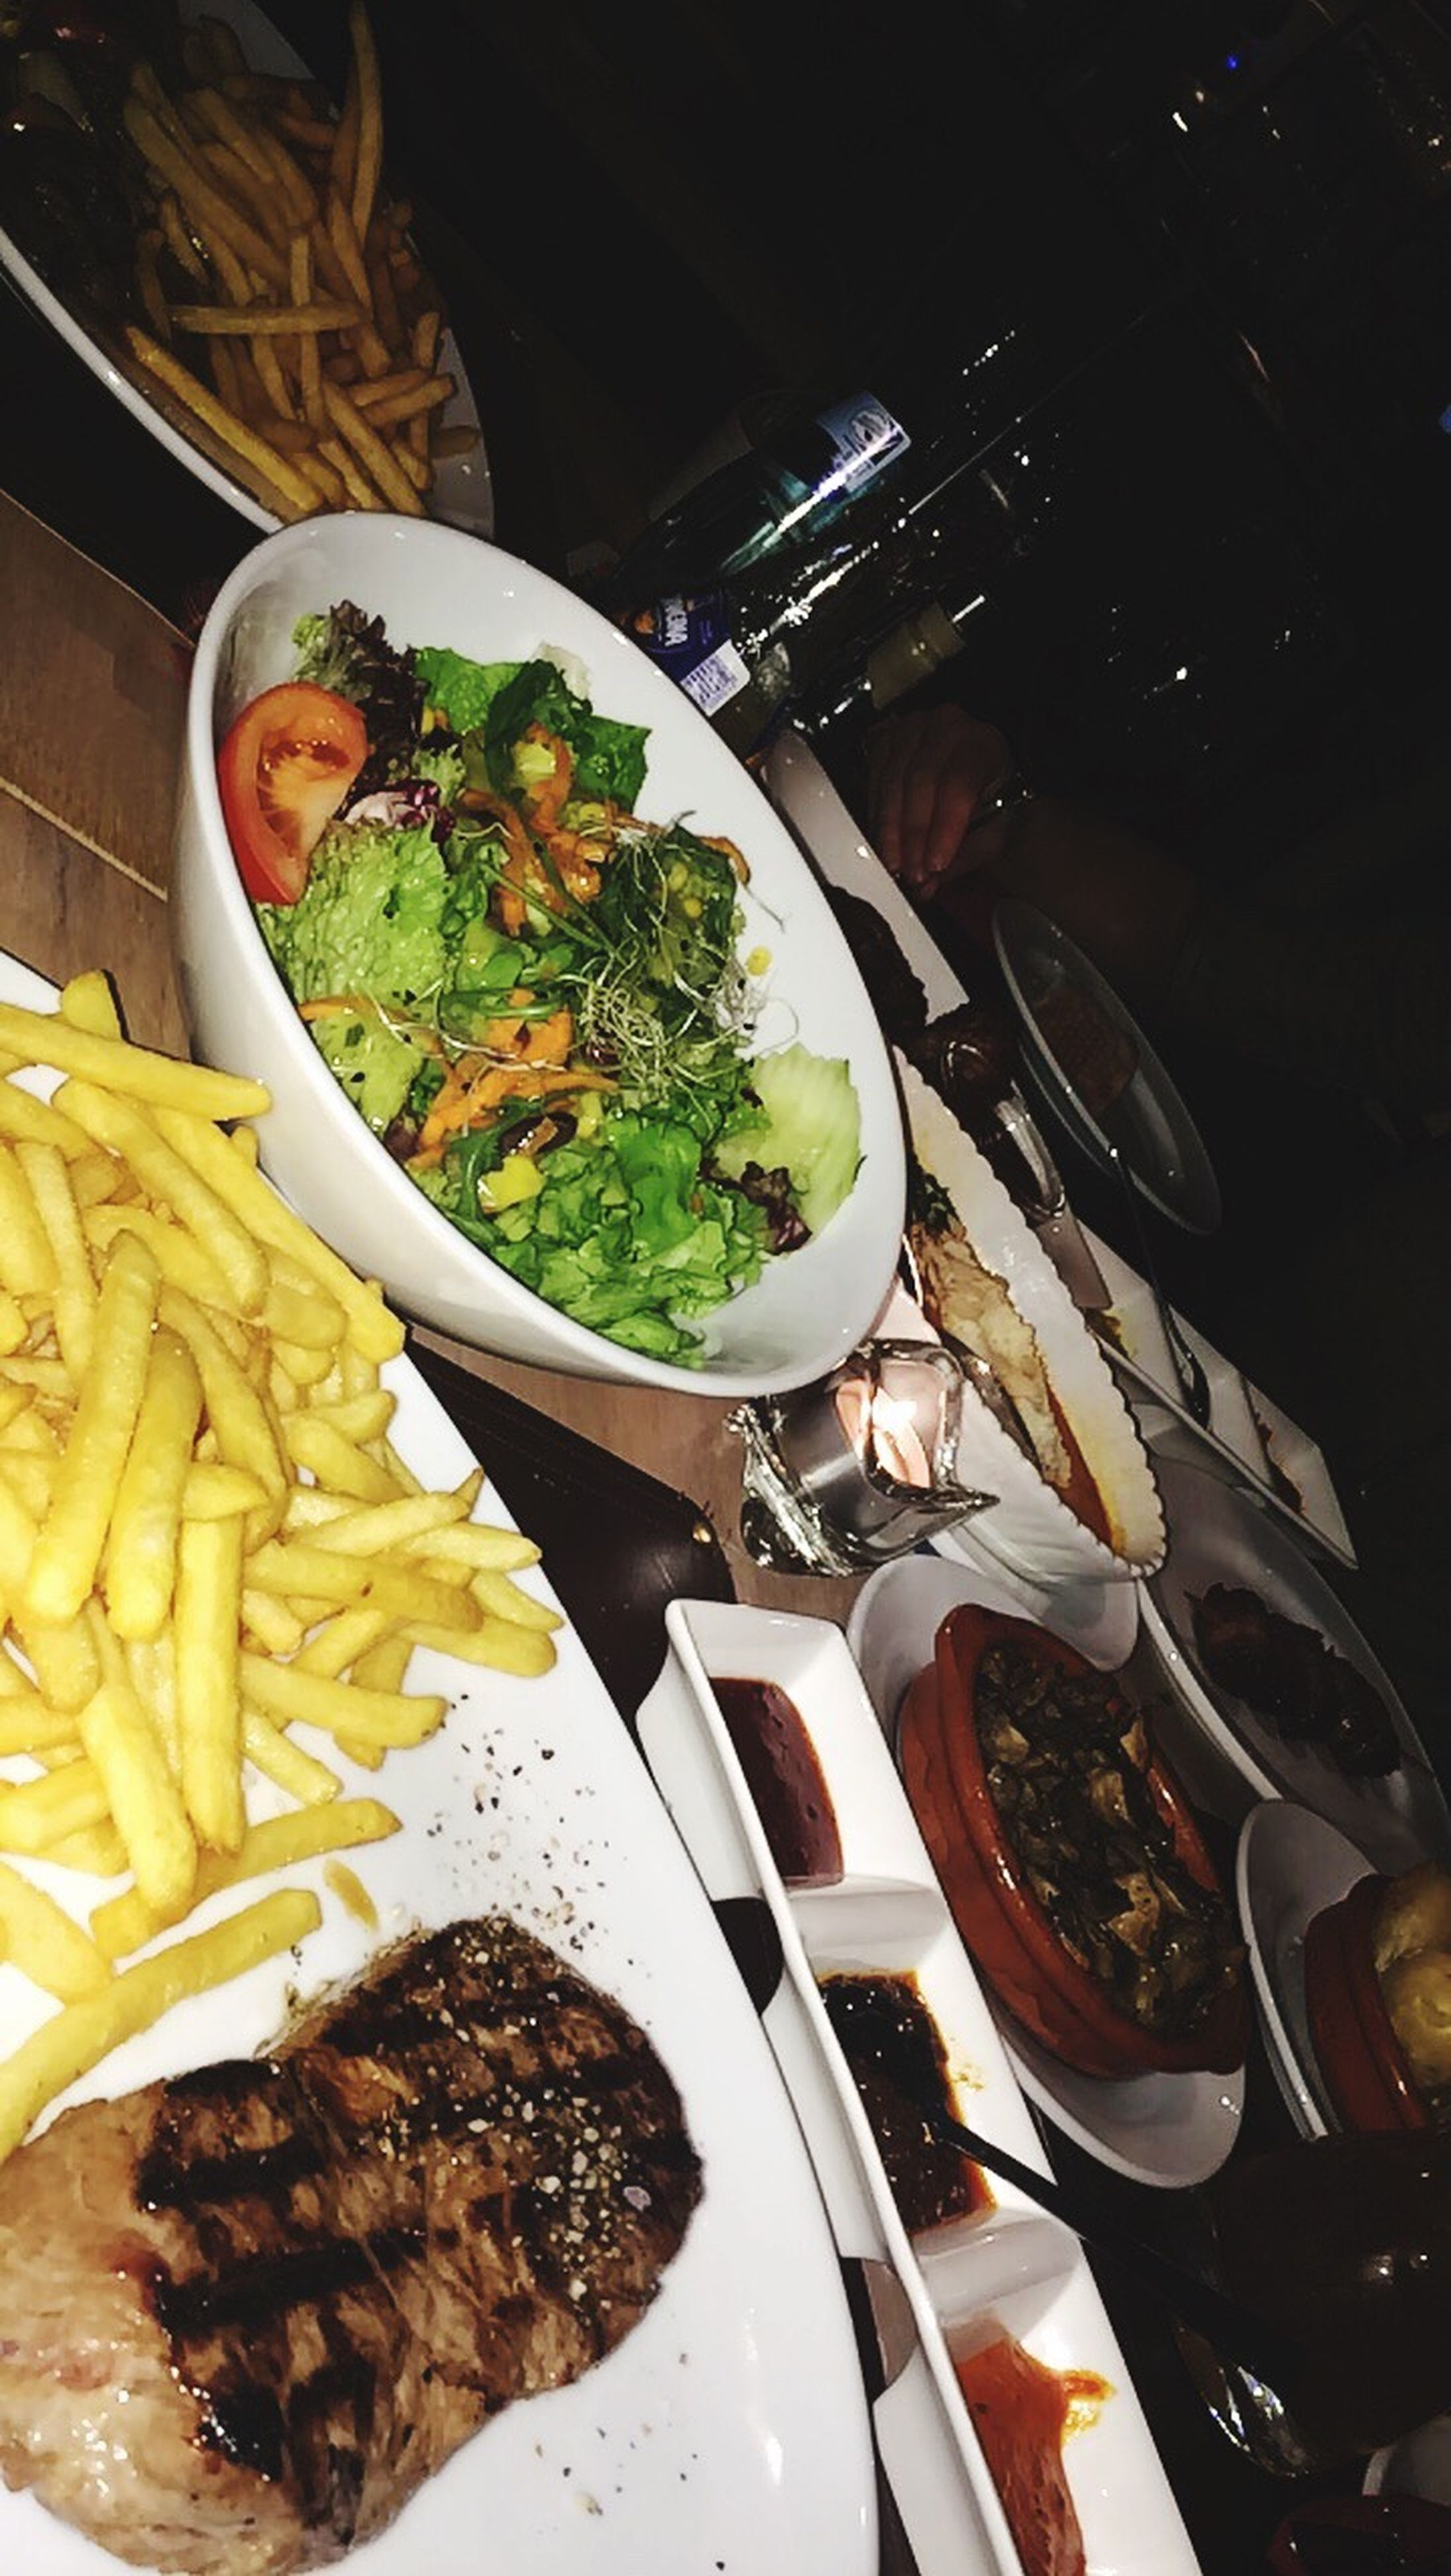 food, food and drink, high angle view, ready-to-eat, plate, freshness, meal, healthy eating, table, indoors, no people, close-up, asian food, prepared food, day